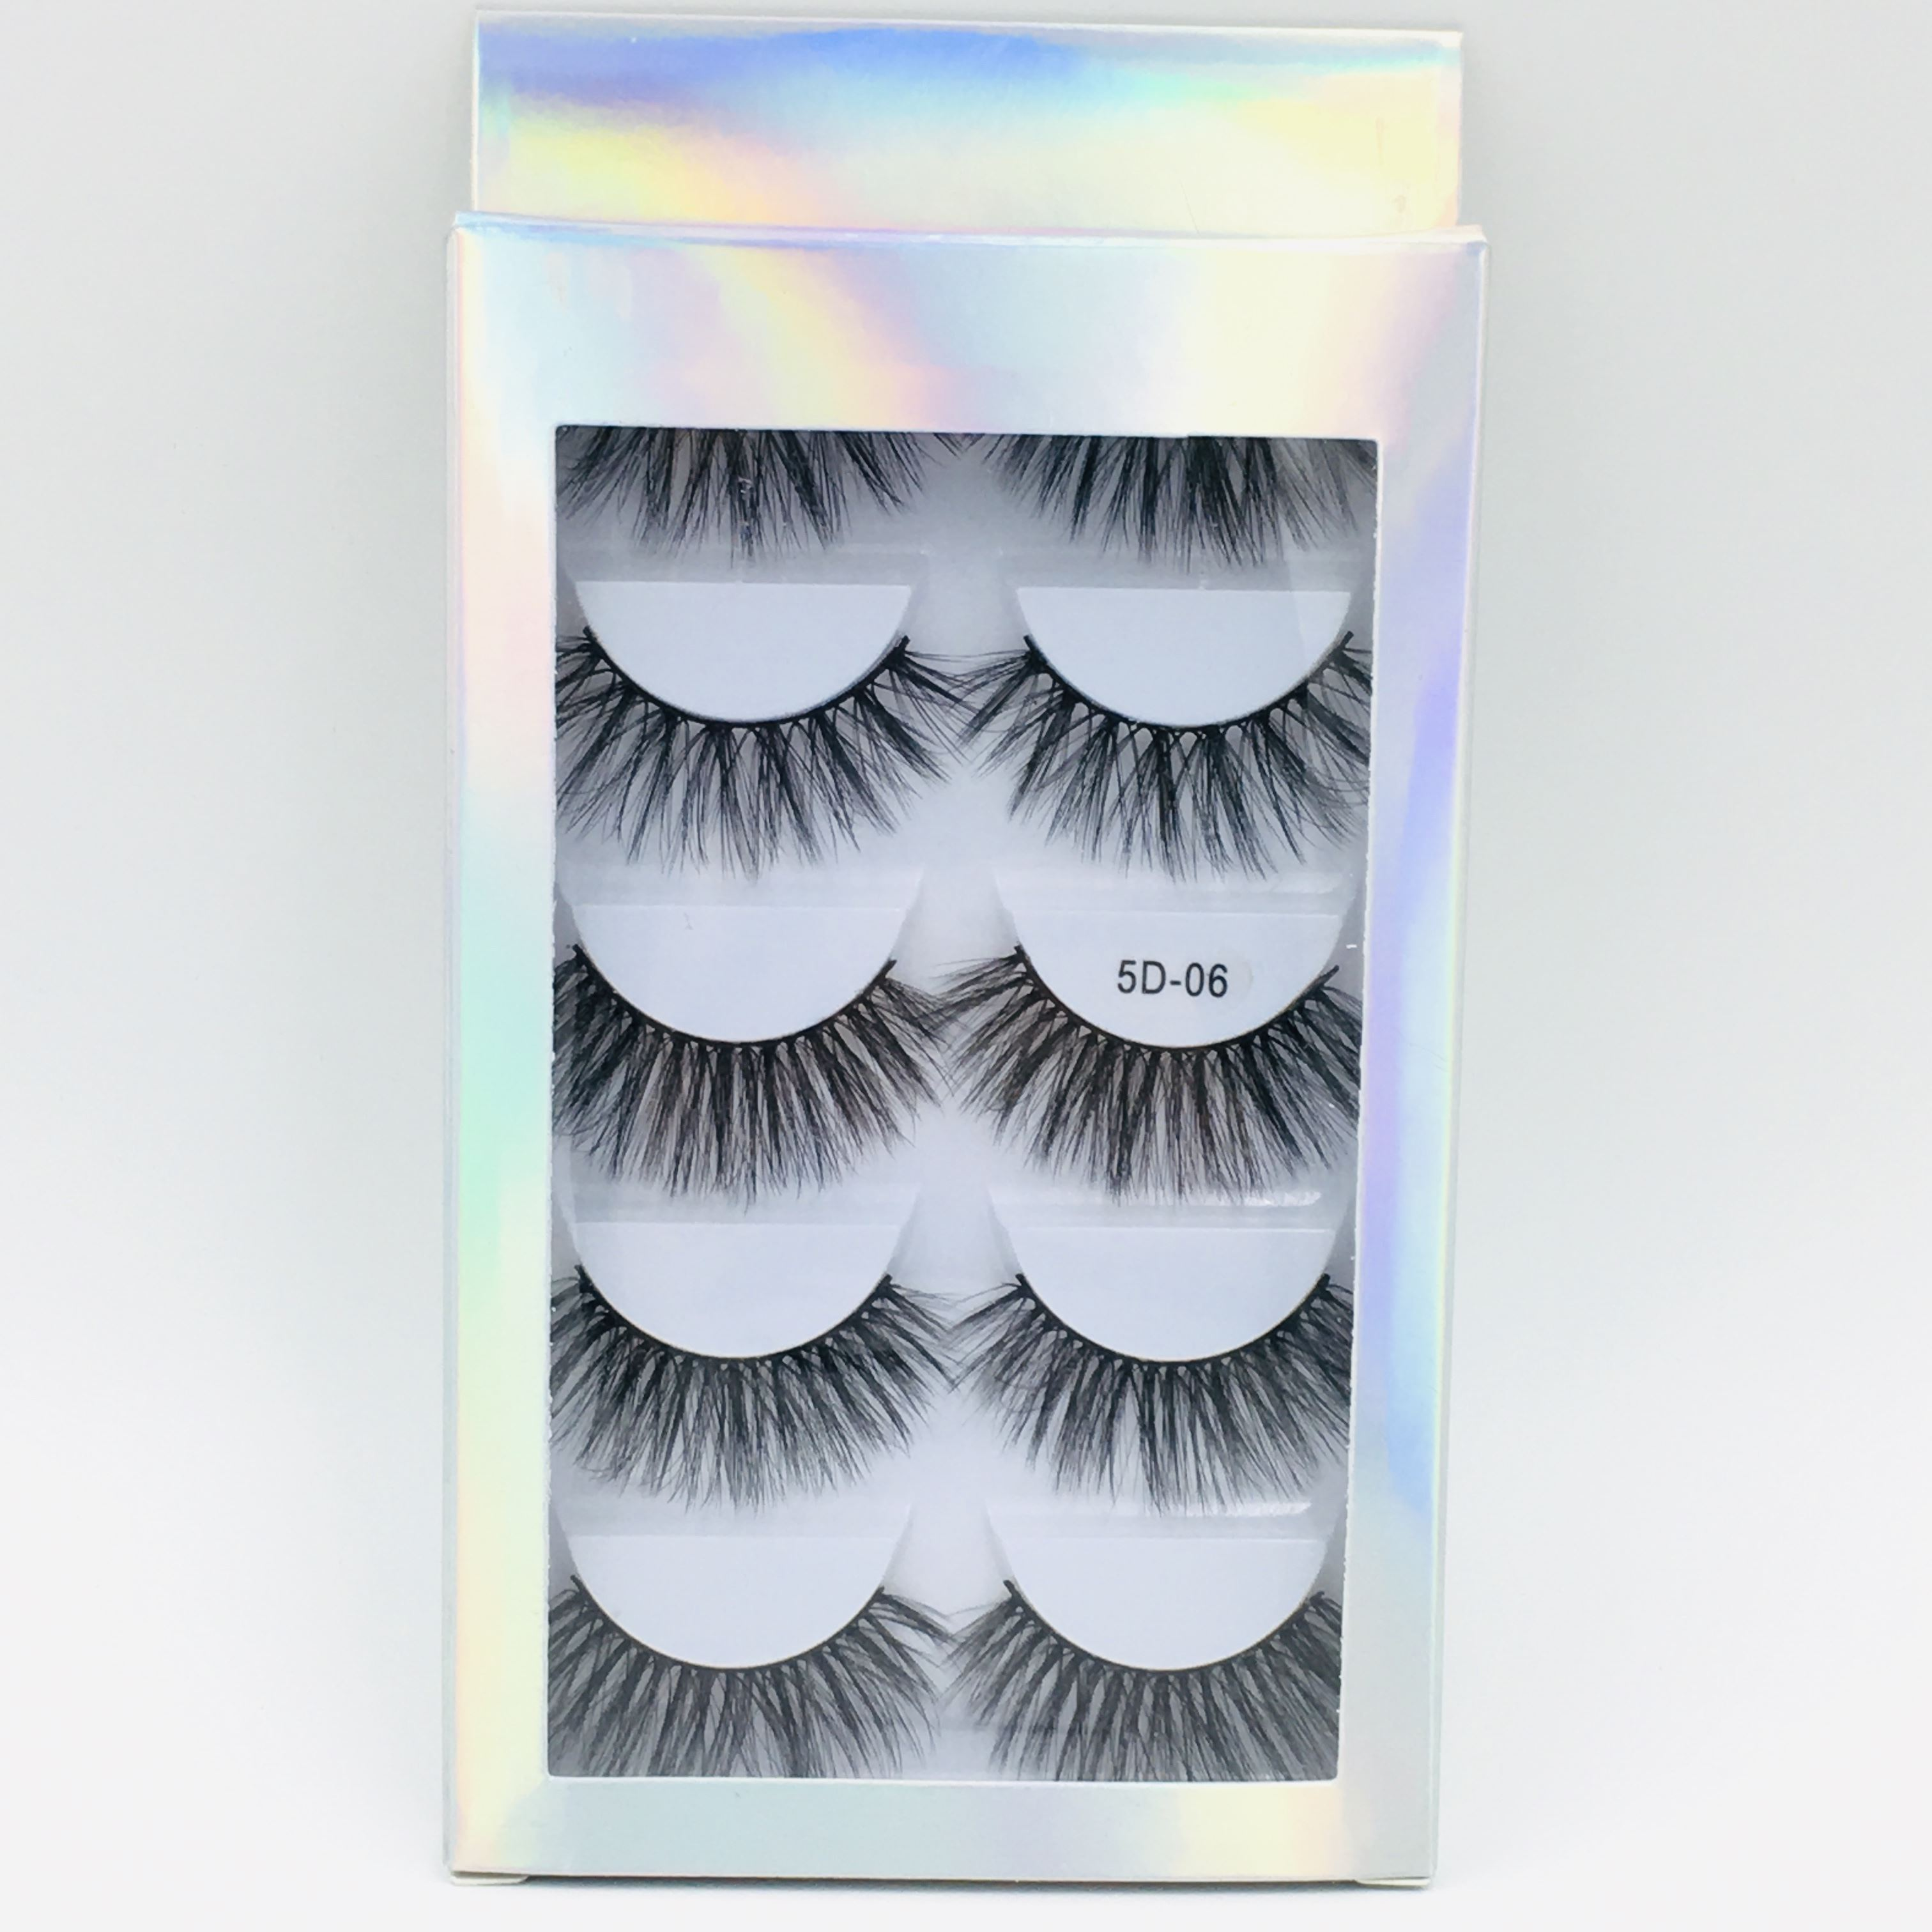 SEXYSHEEP 5 Pairs 3D Faux Mink Hair Soft False Eyelashes Fluffy Wispy Thick Lashes Handmade Soft Eye Makeup Extension Tools